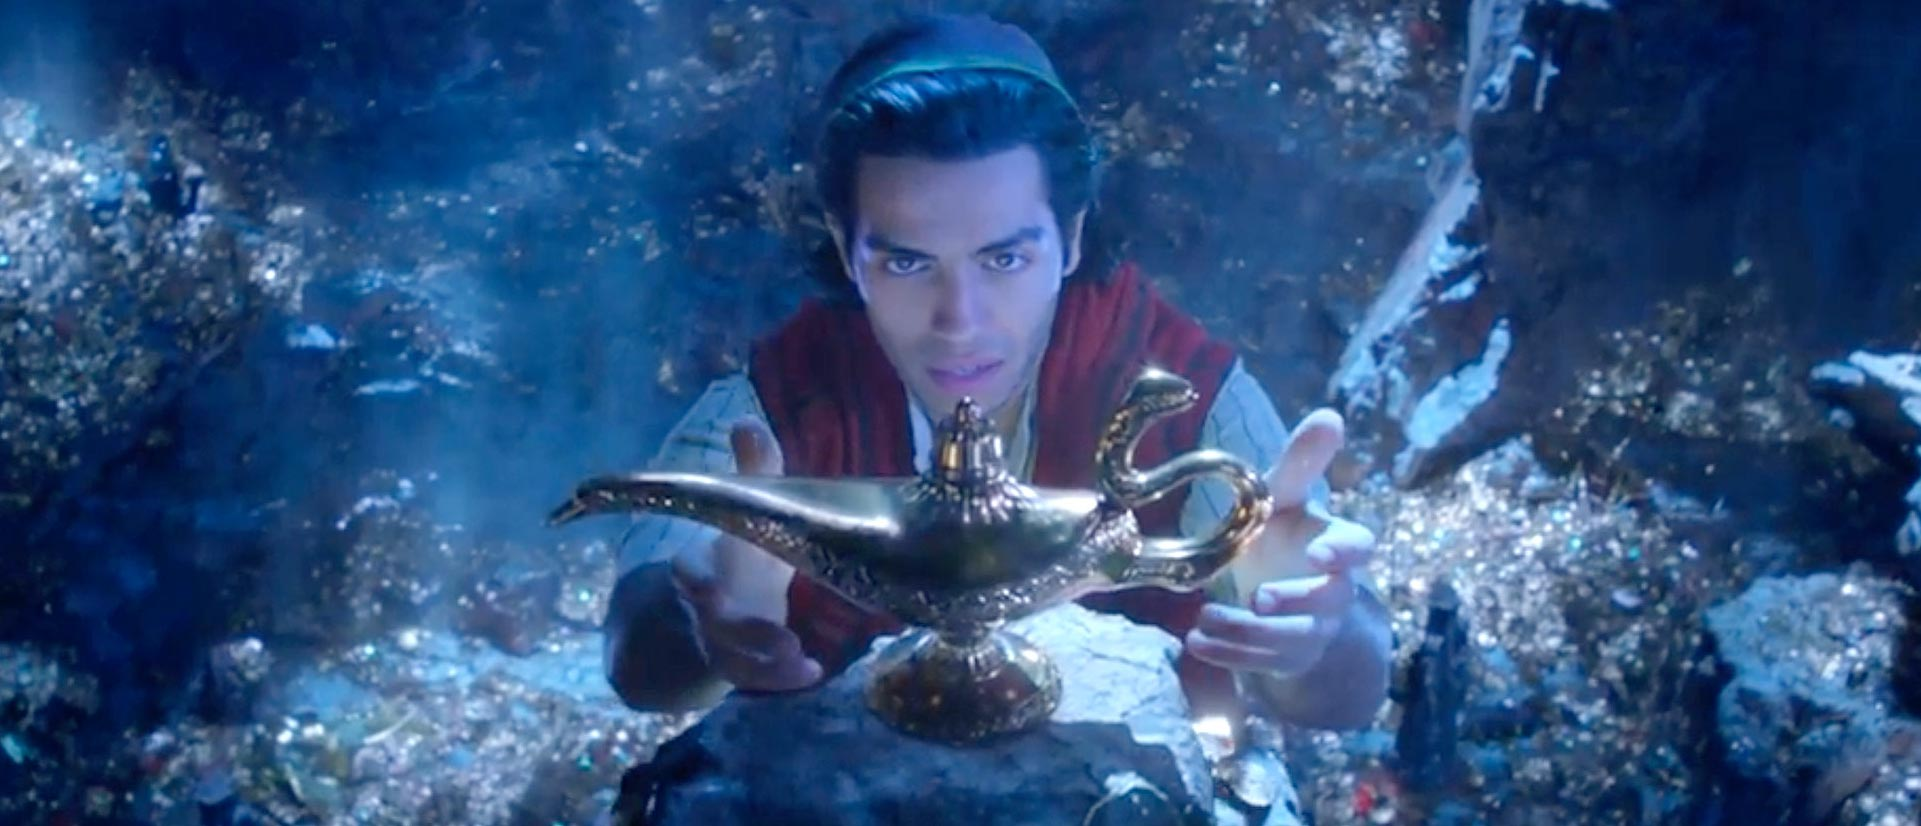 Aladdin review a hollow remake of classic film